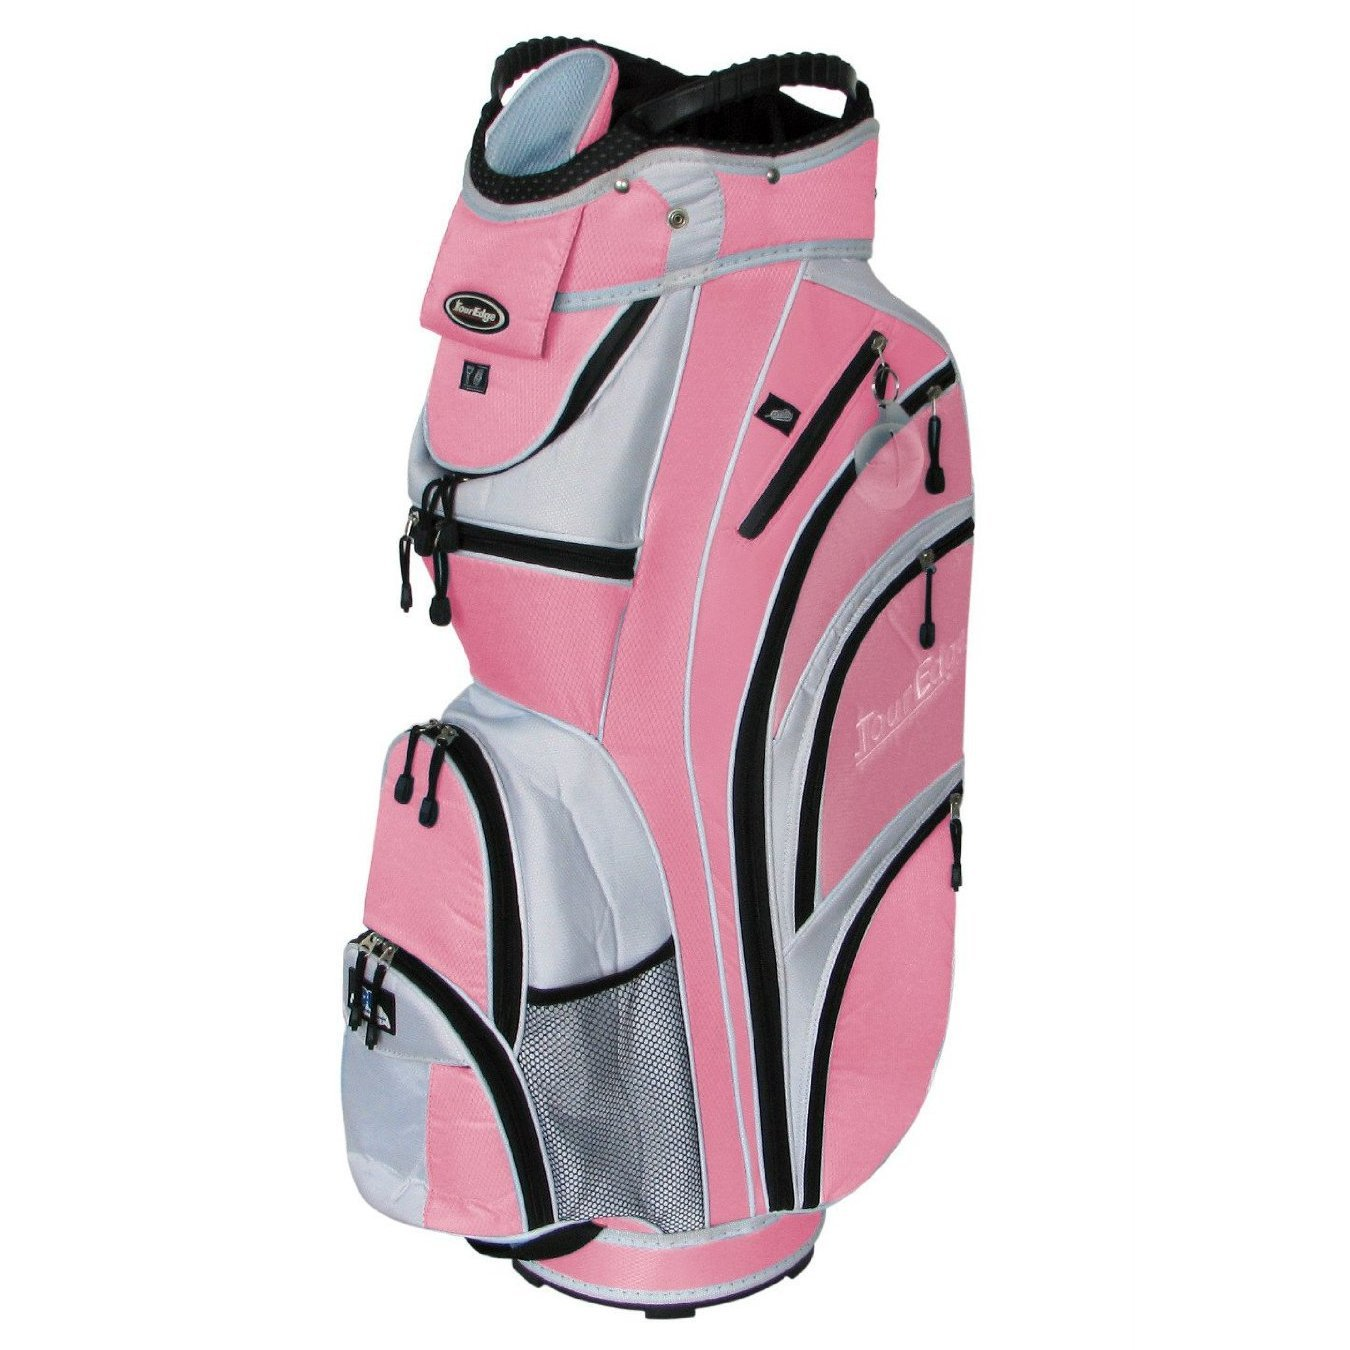 Womens Tour Edge Max-D Golf Cart Bags